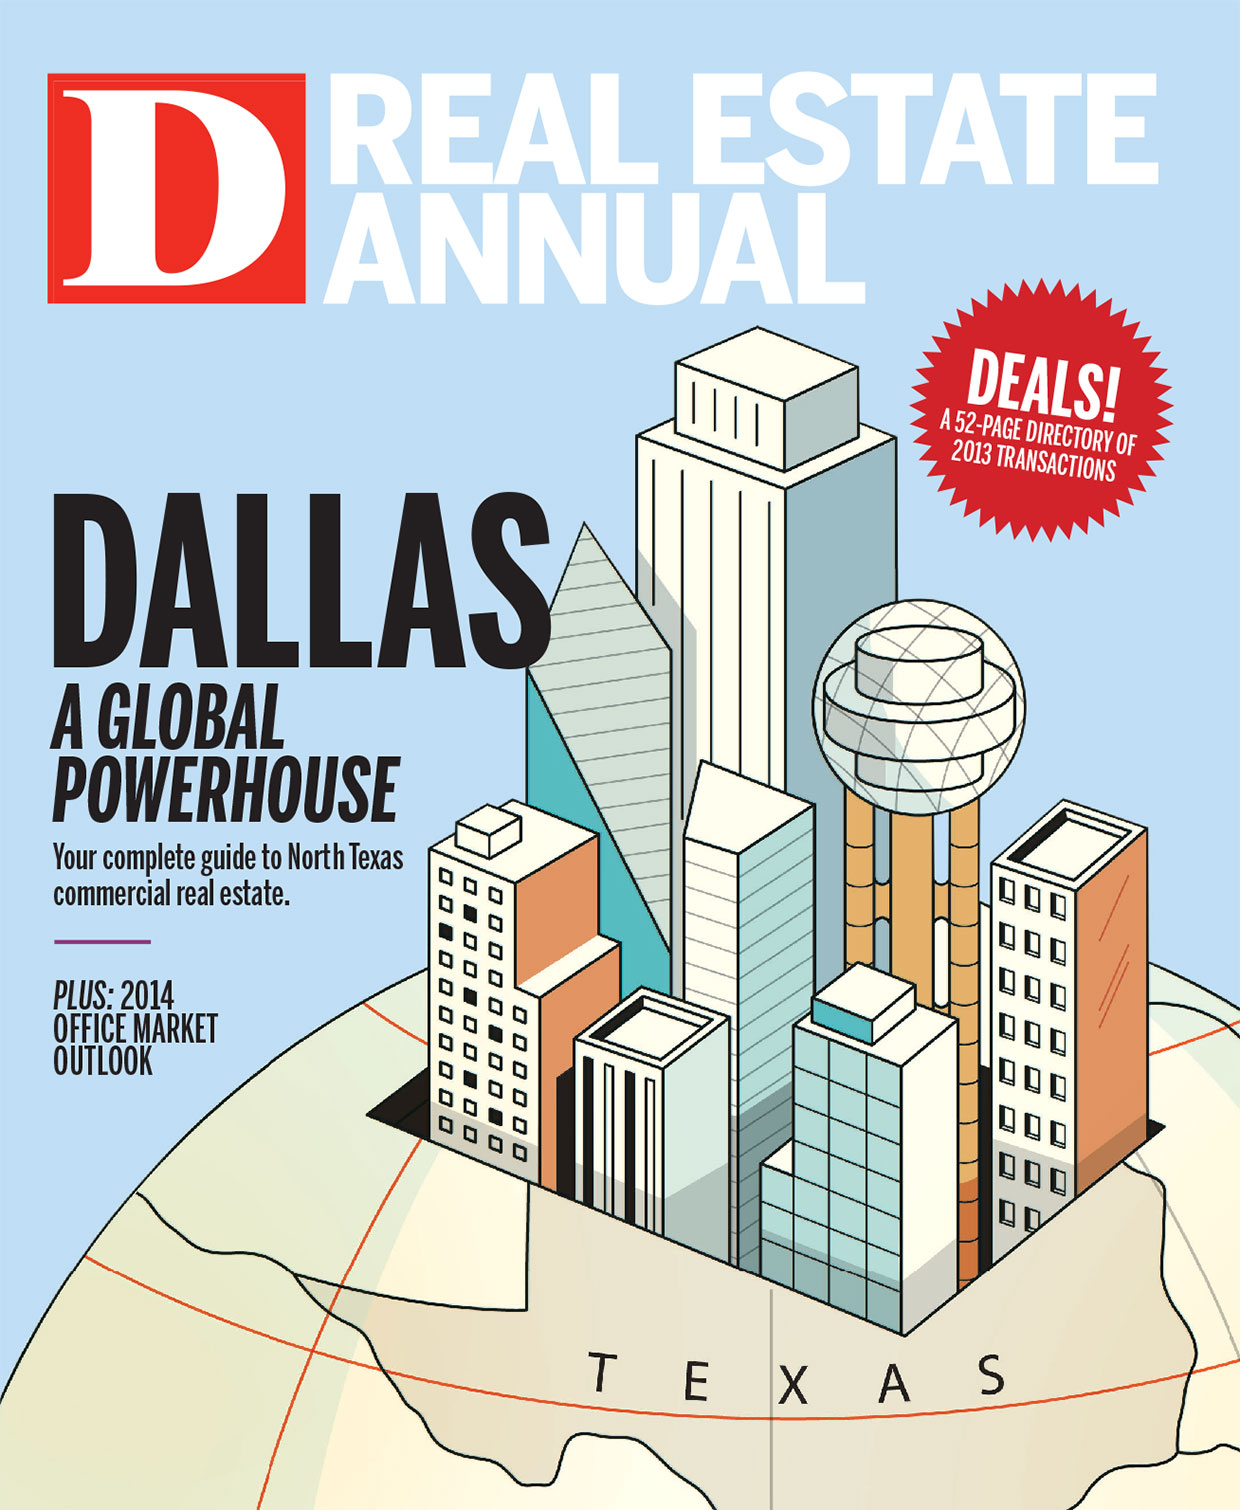 Real Estate Annual 2014 cover